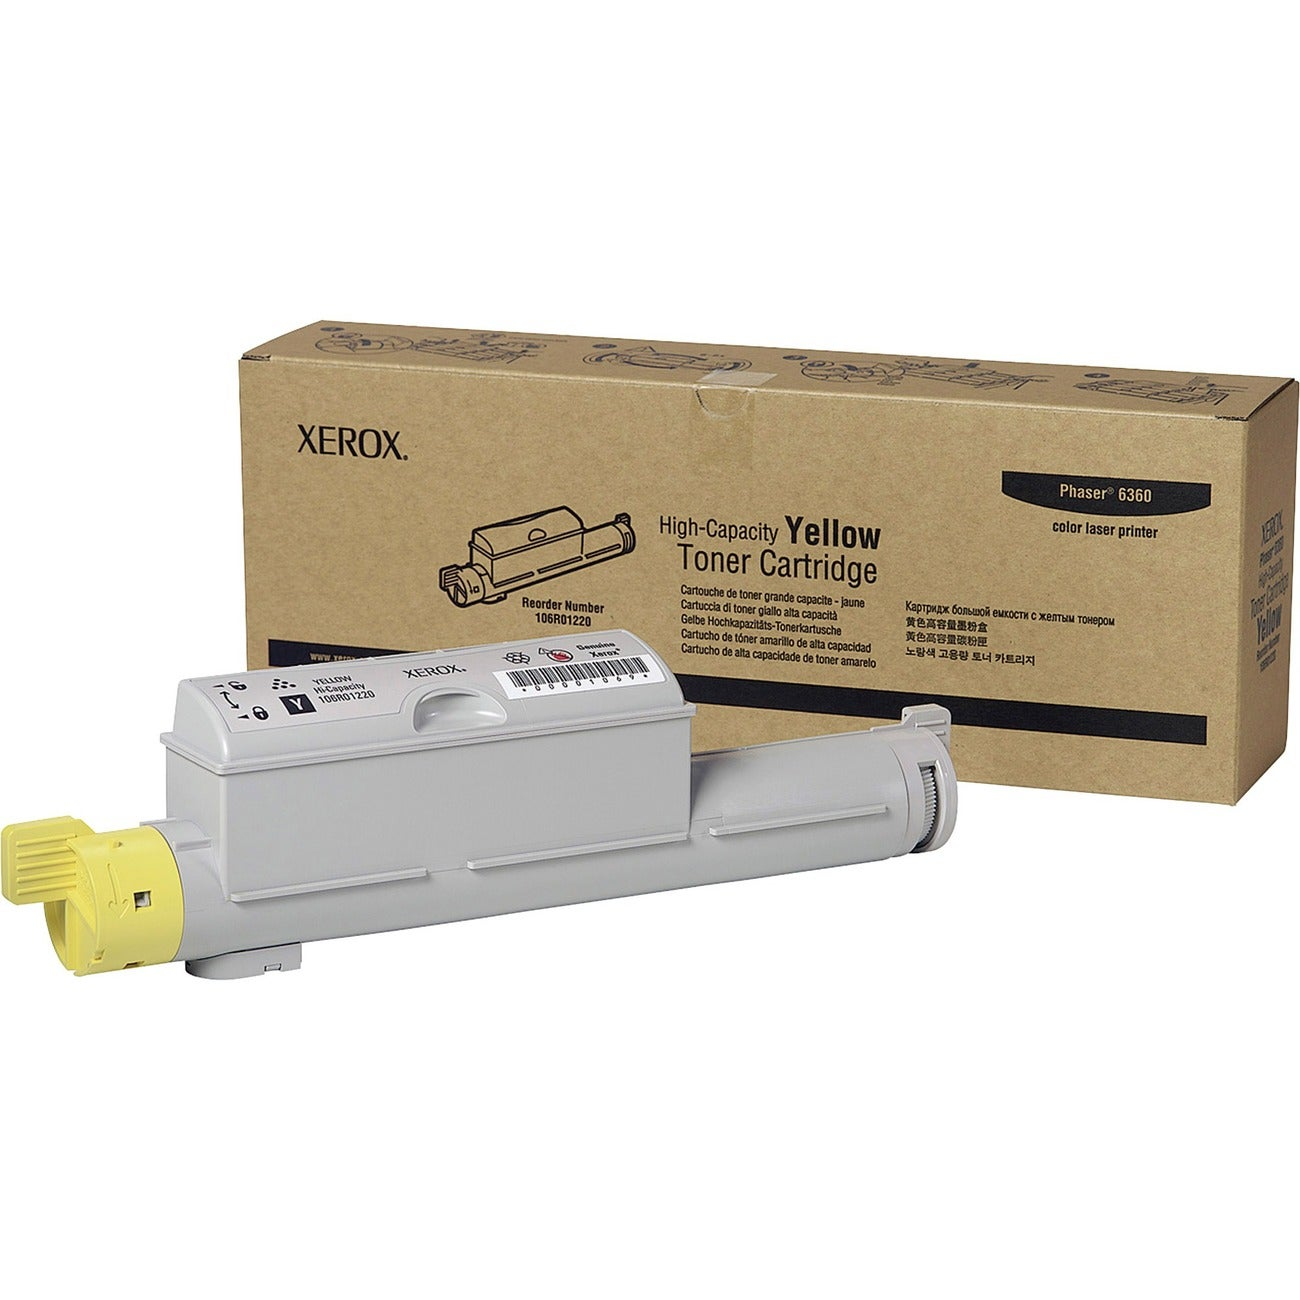 Xerox High Capacity Yellow Toner Cartridge